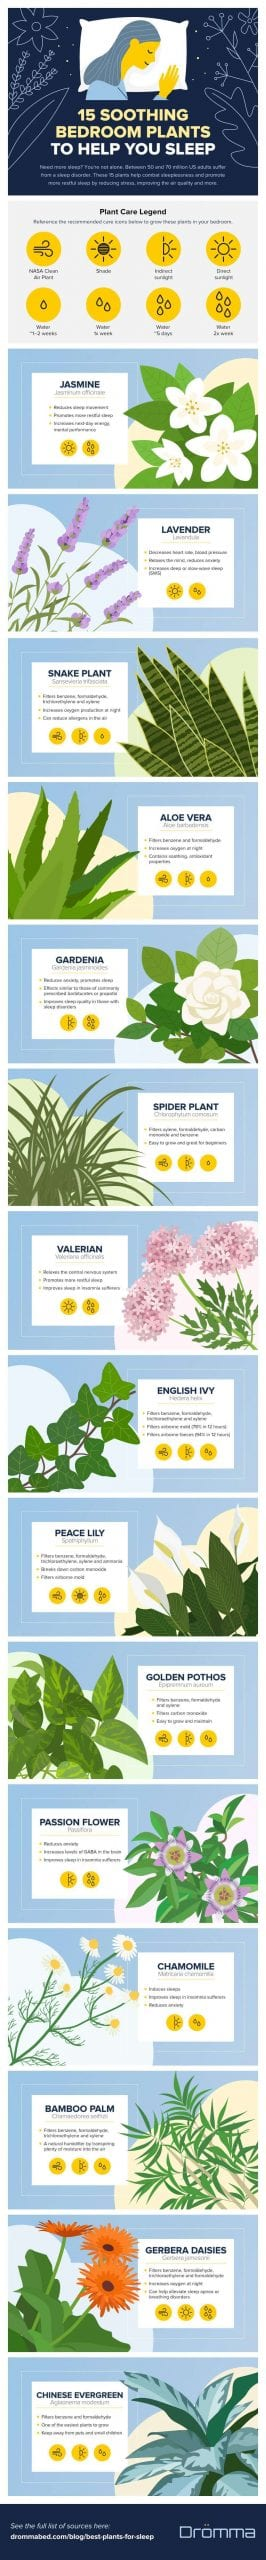 15 best indoor plants for sleep